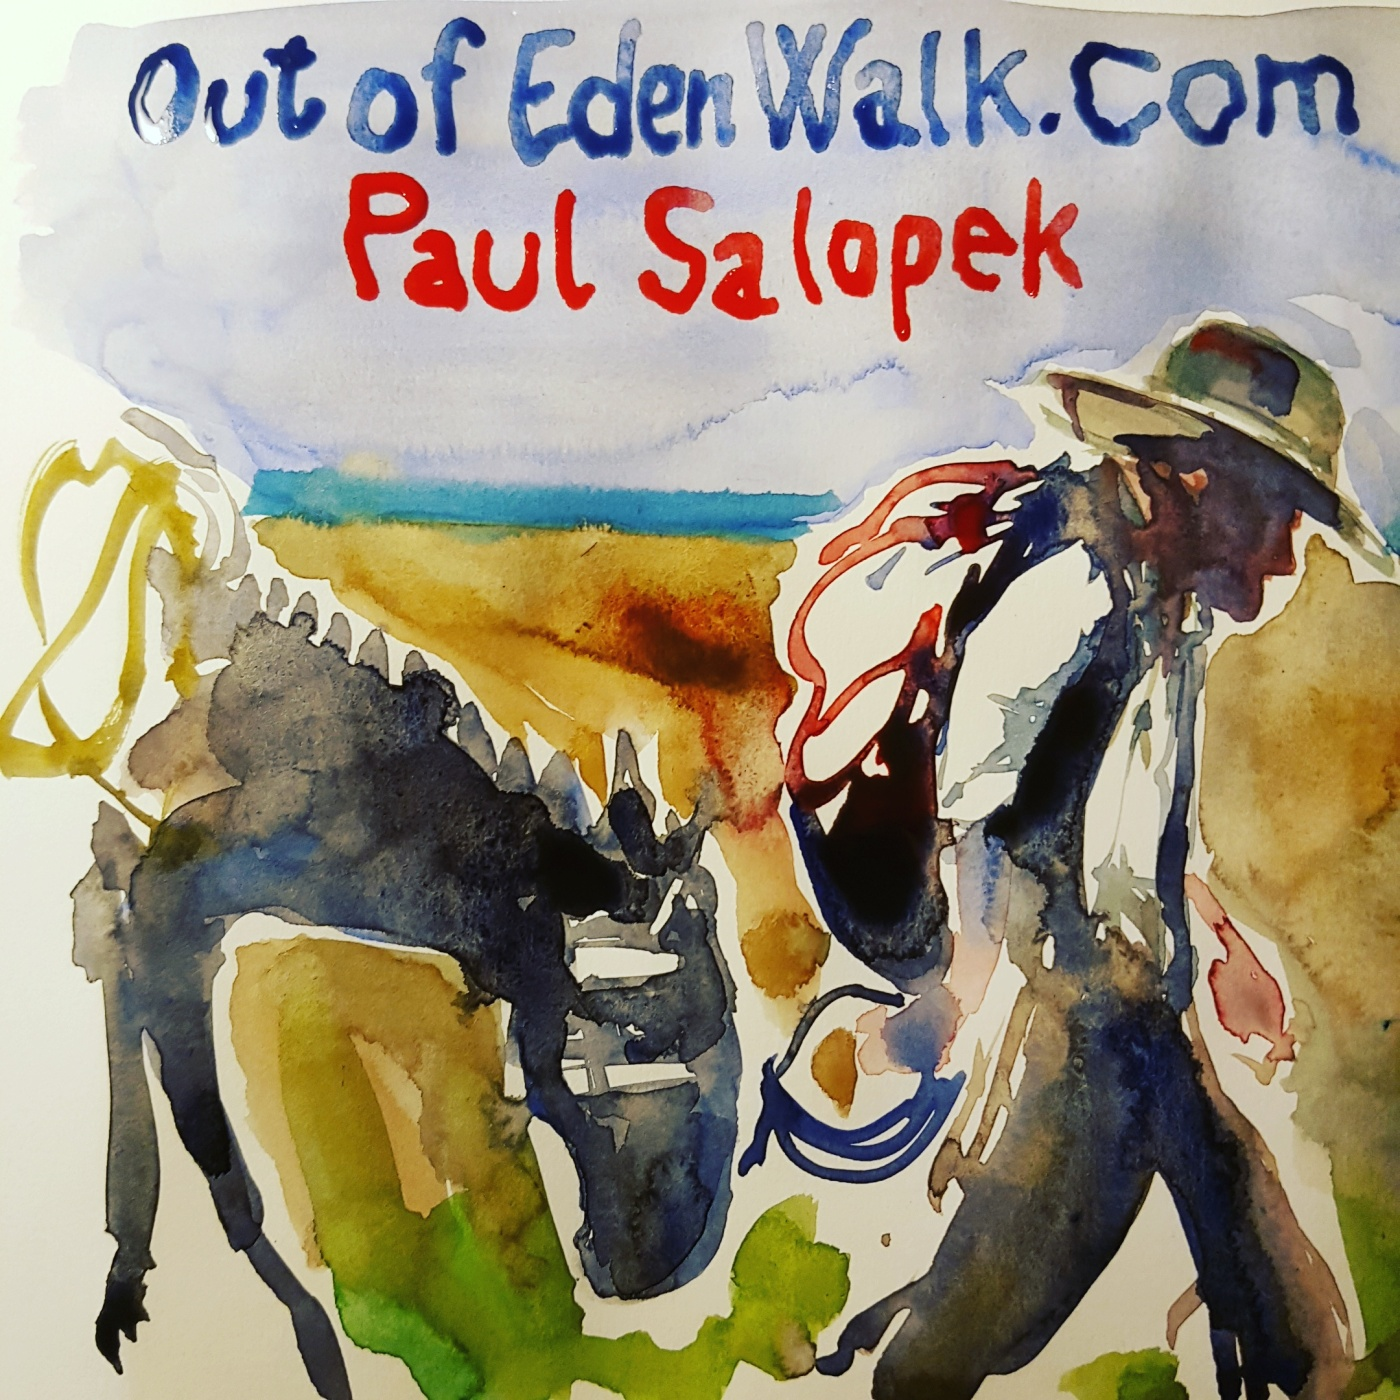 Watercolor of long distance walker and writer Paul Salopek